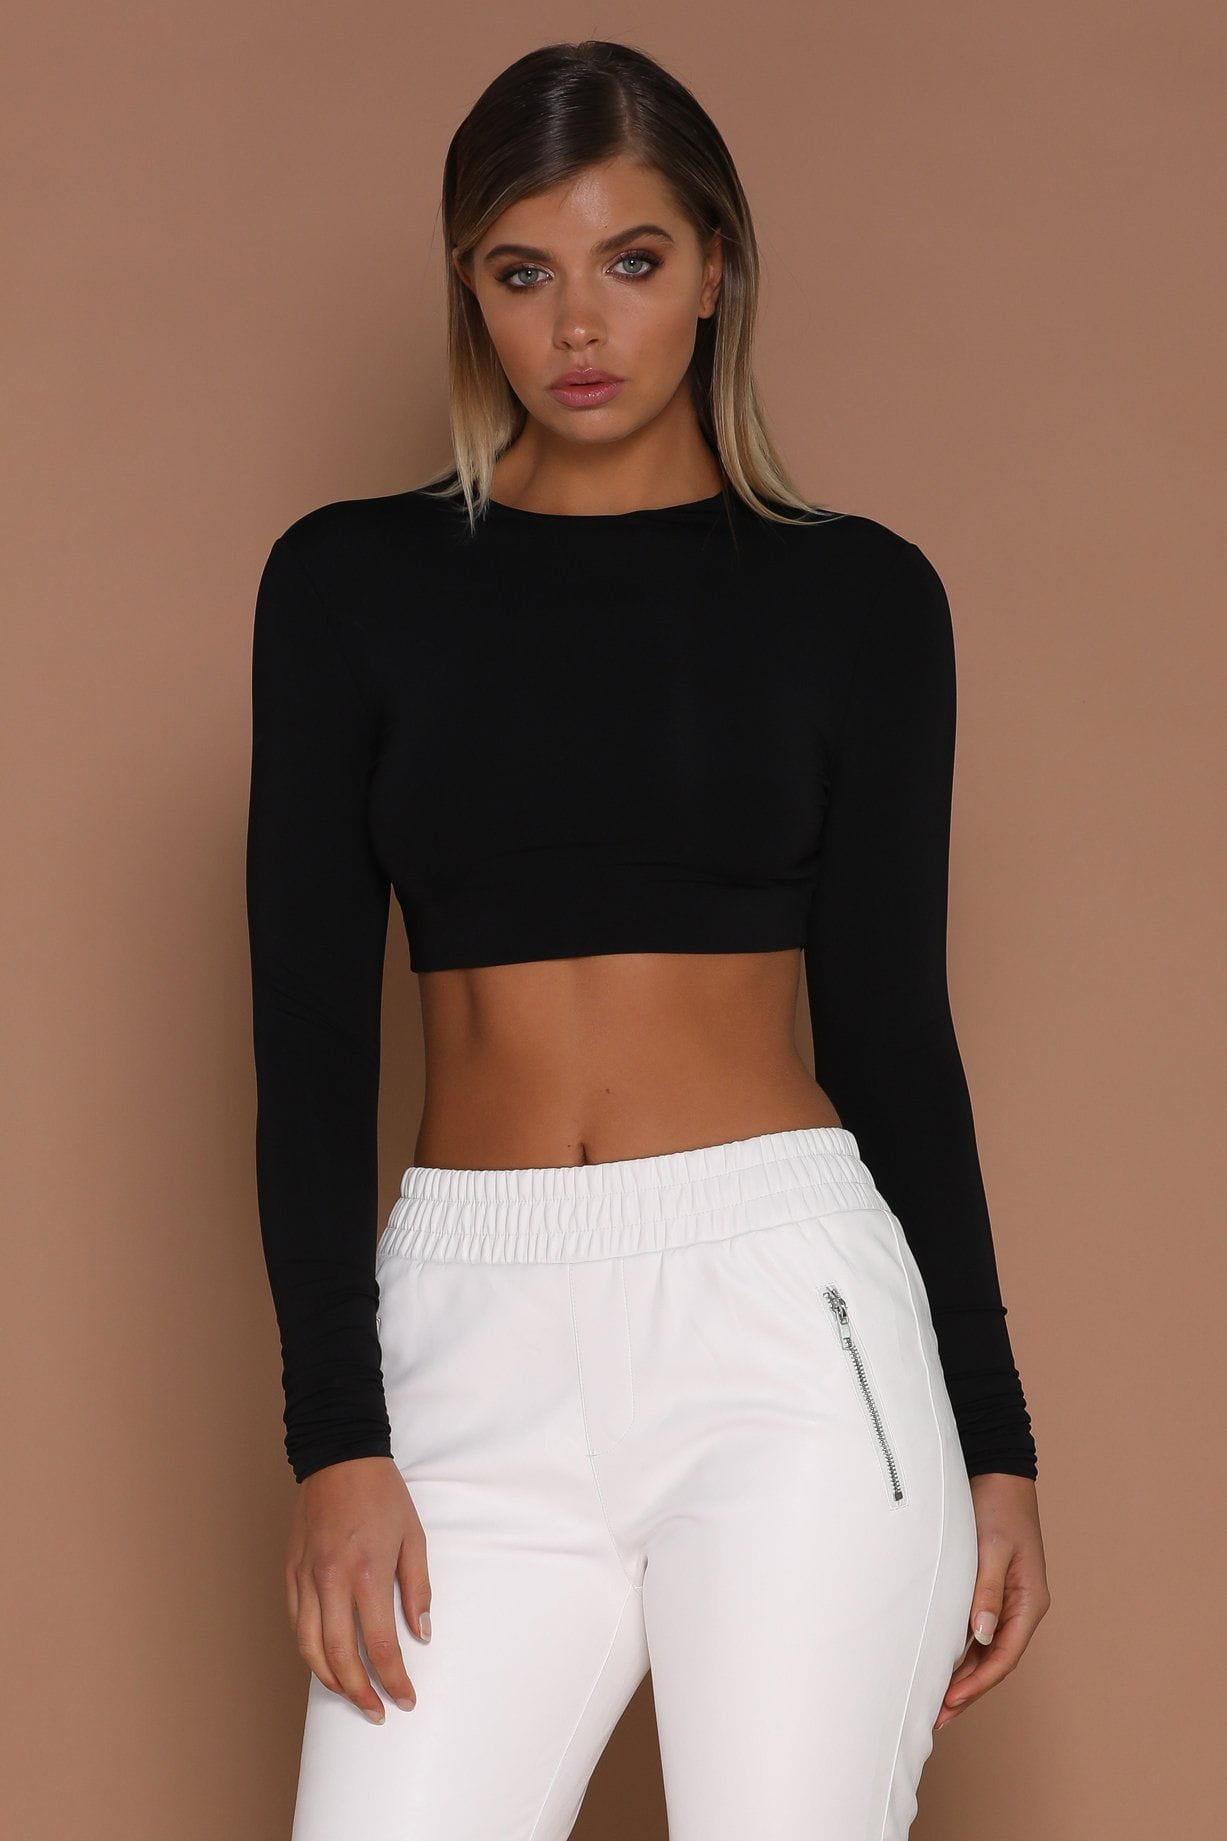 Crop tops We've got your covered in our crop tops weather it's for a day out on the boardwalk or a sexy crop top to hit the club and parties. So many to select from including our lace bralette tops and our stretchy mesh crop tops.